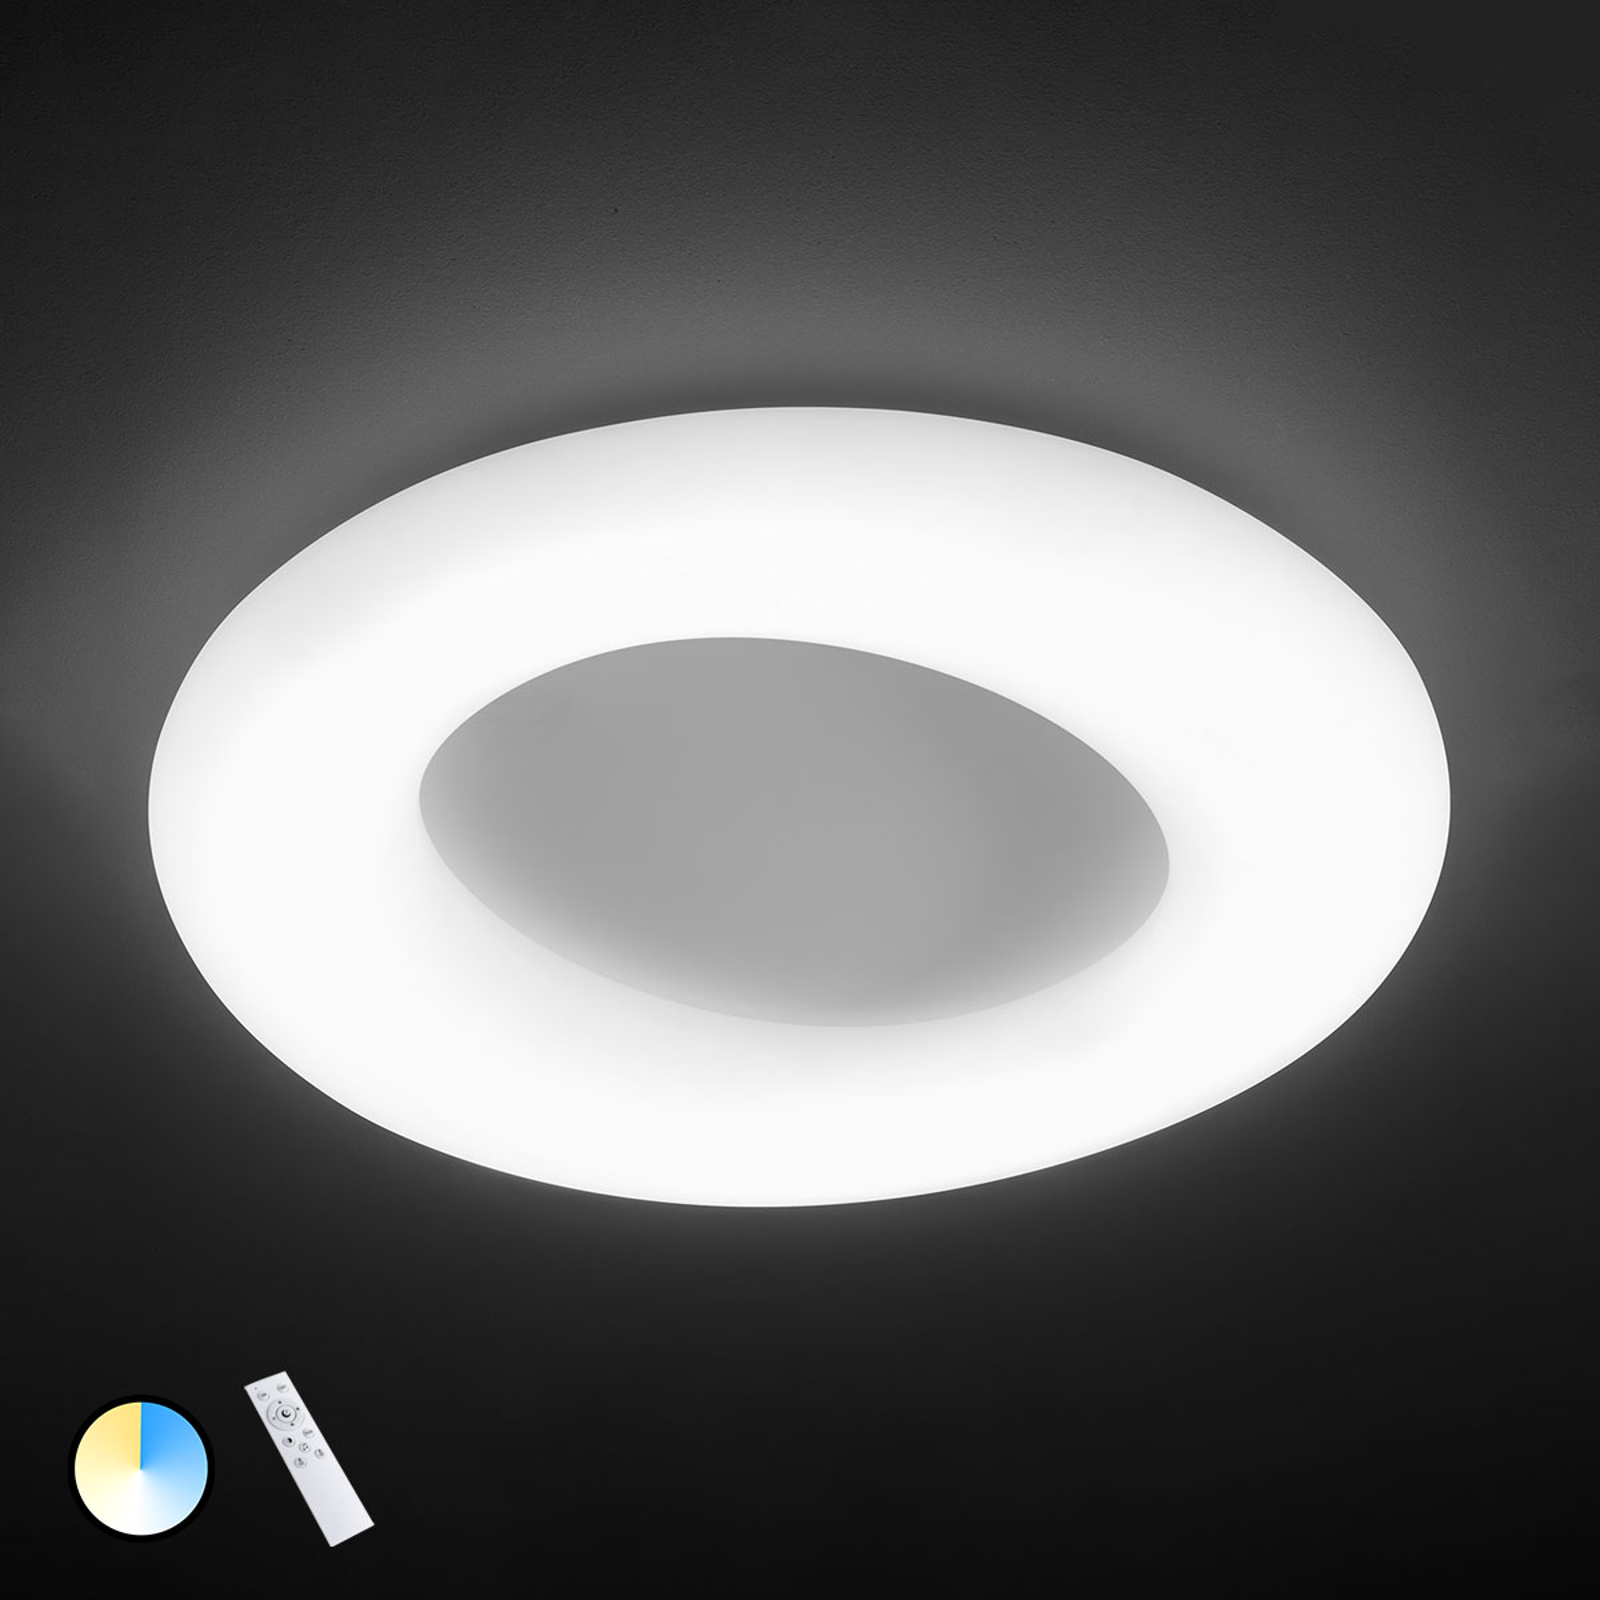 County - regulowana lampa sufitowa LED, Ø 75 cm